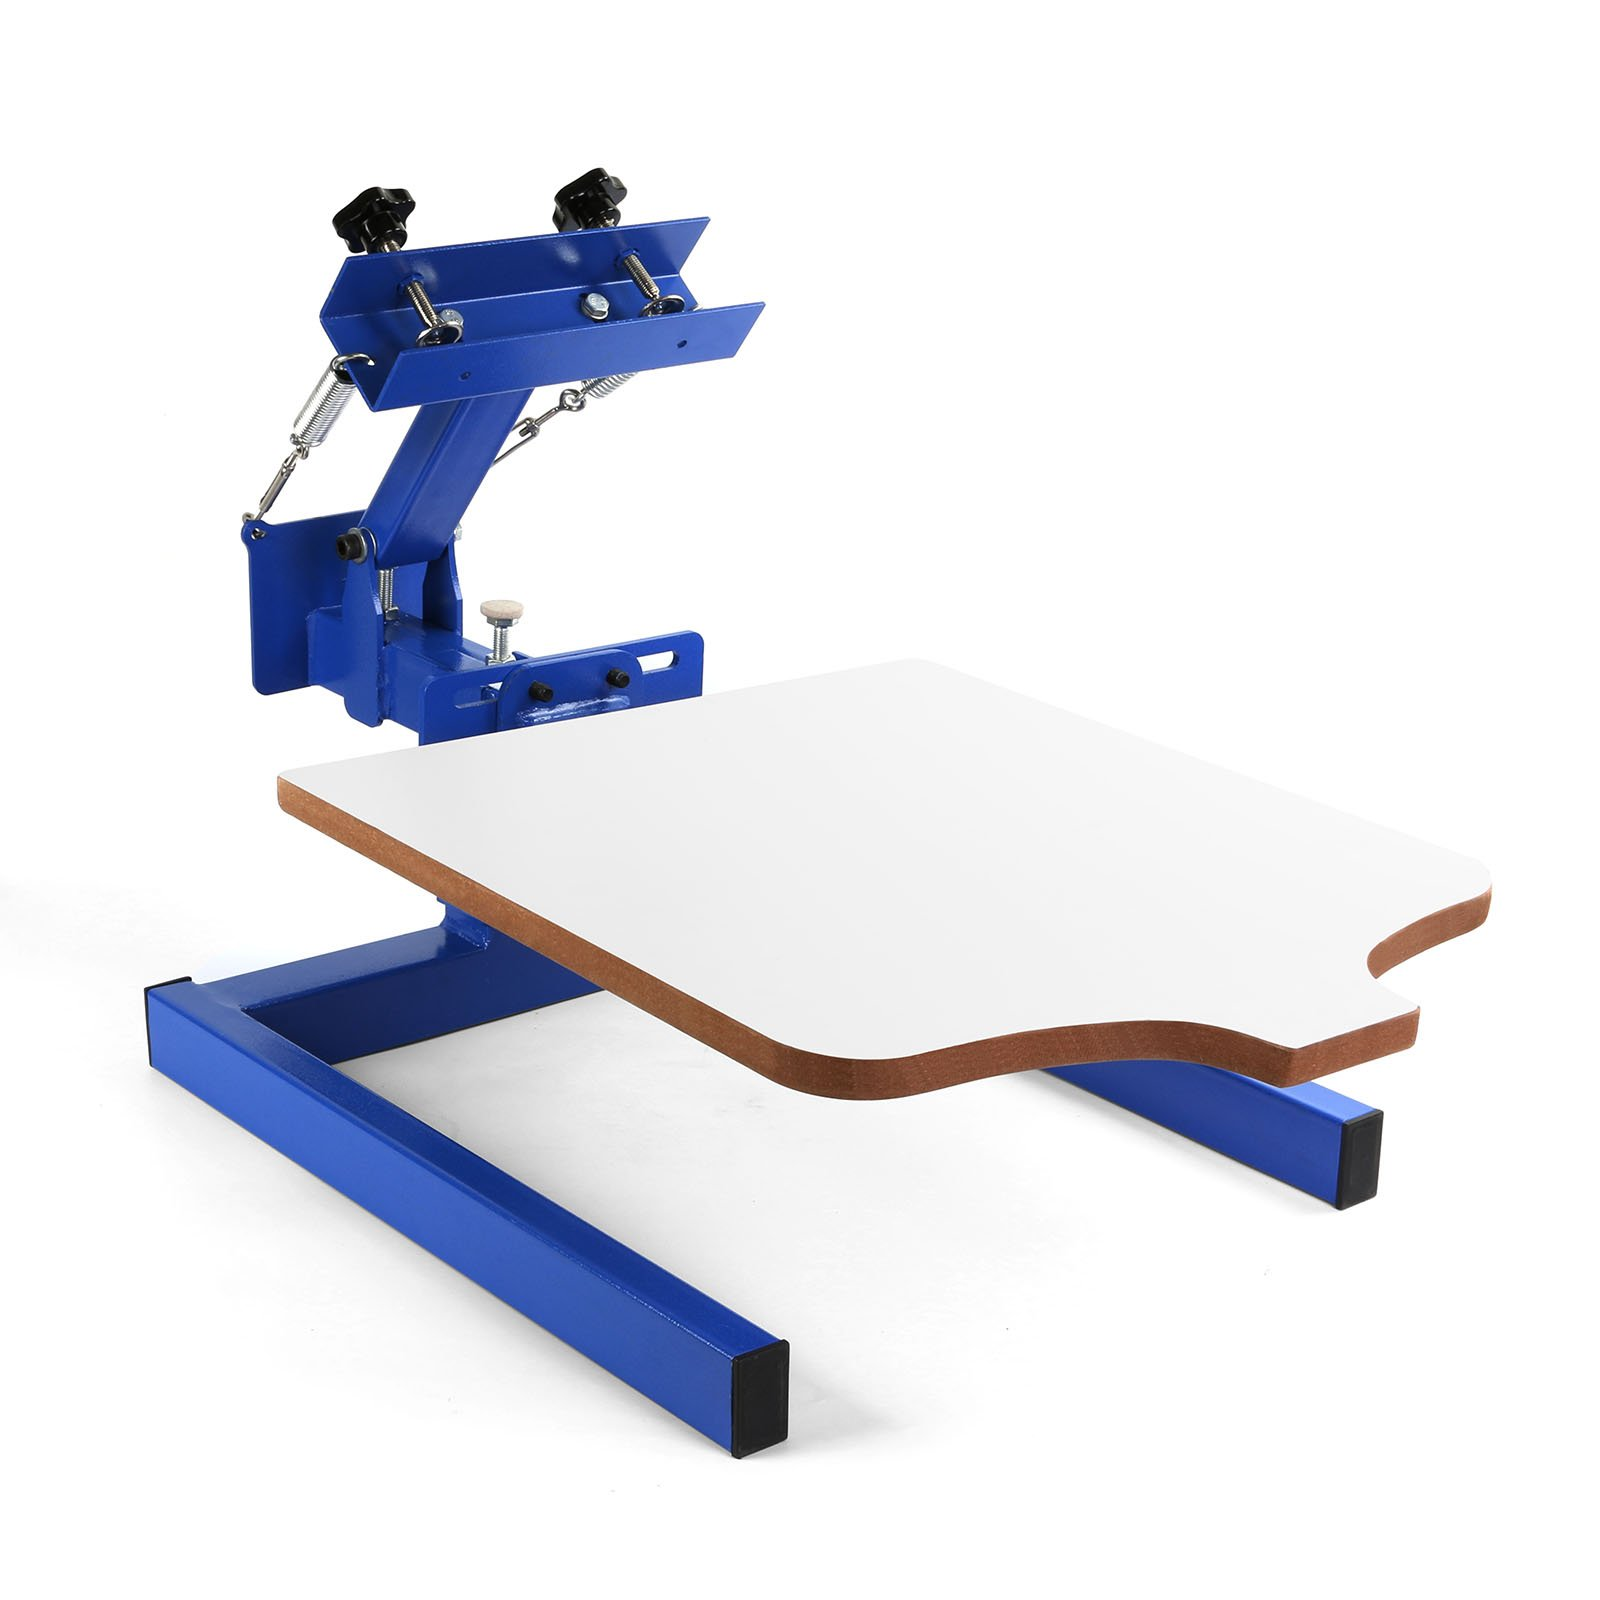 BestEquip Screen Printing Machine 1 Station 1 Color Screen Printing for T-shirt DIY Screen Printing Press Silk Screen Removable Pallet (1 station 1 color)